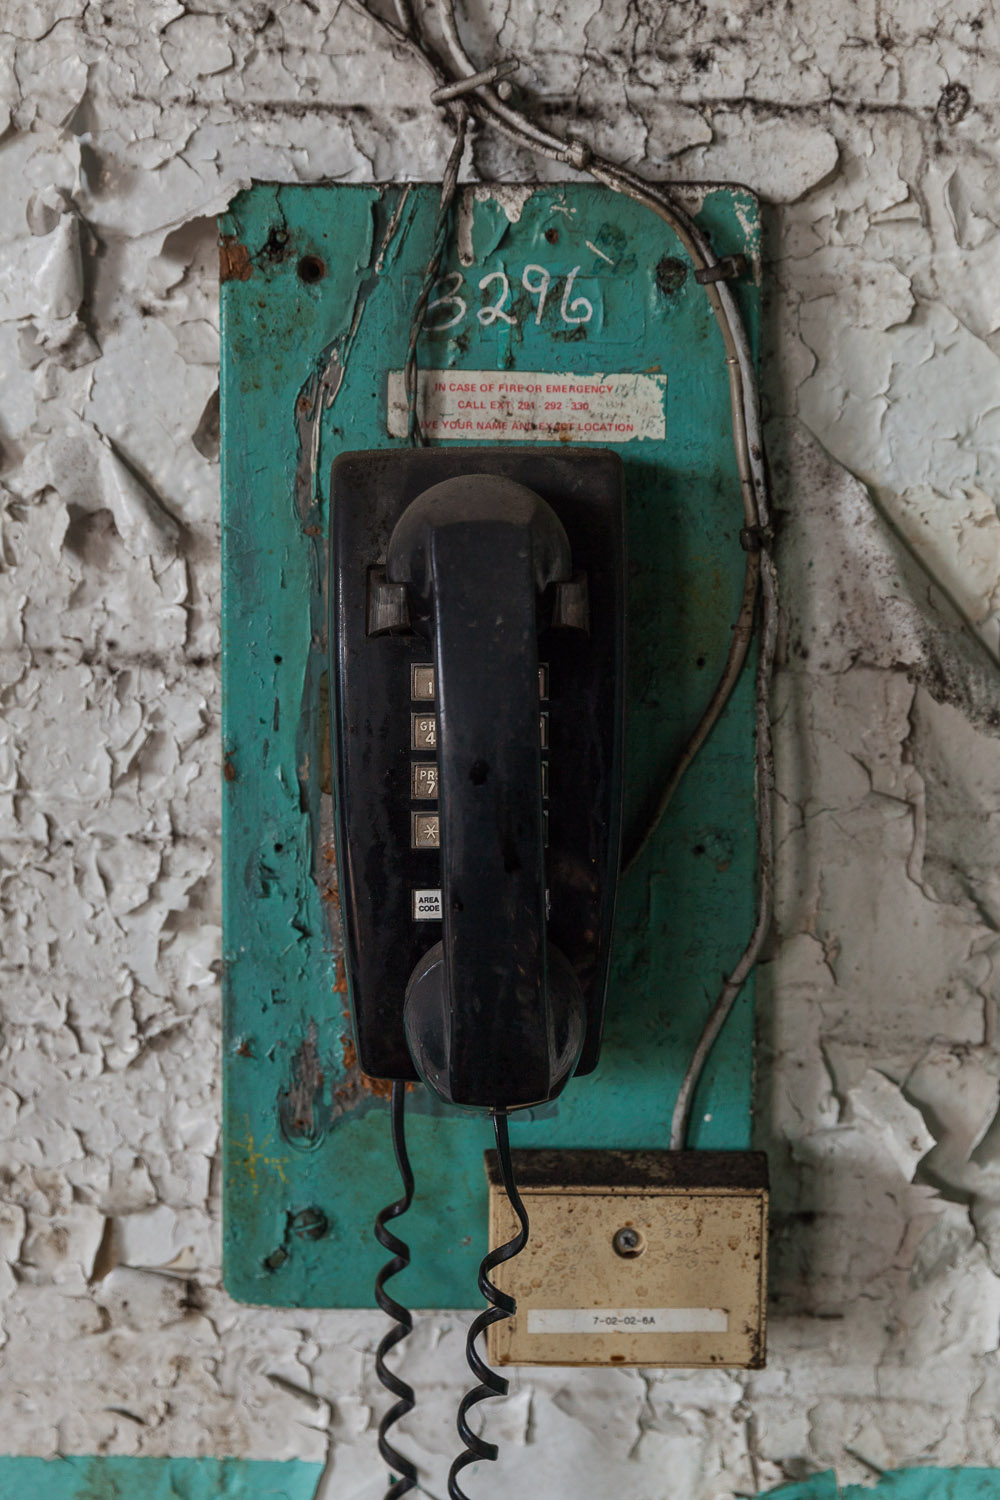 Touchtone Phone Extension 3296, Raw Sugar Wash House — First Floor, Domino Sugar Factory